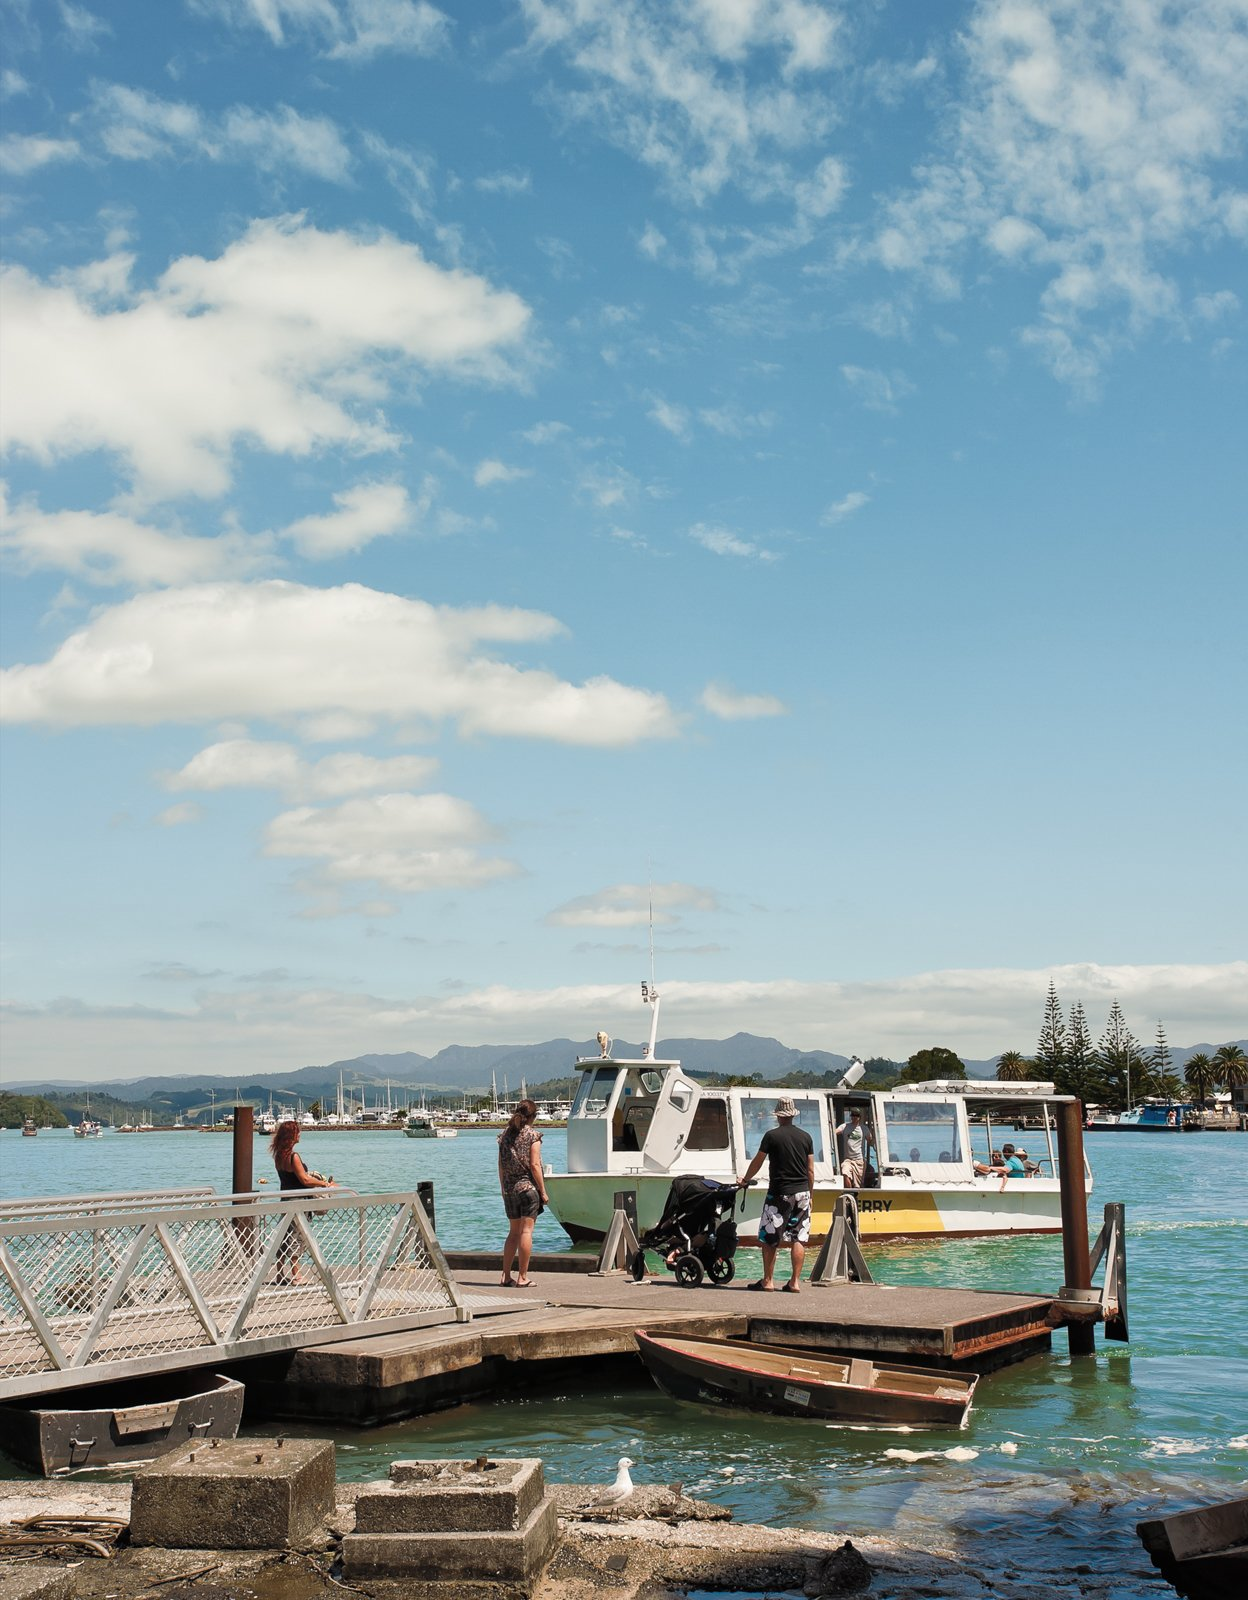 A short walk down the road, a ferry service carries passengers on the two-minute journey across the channel to the small town of Whitianga.